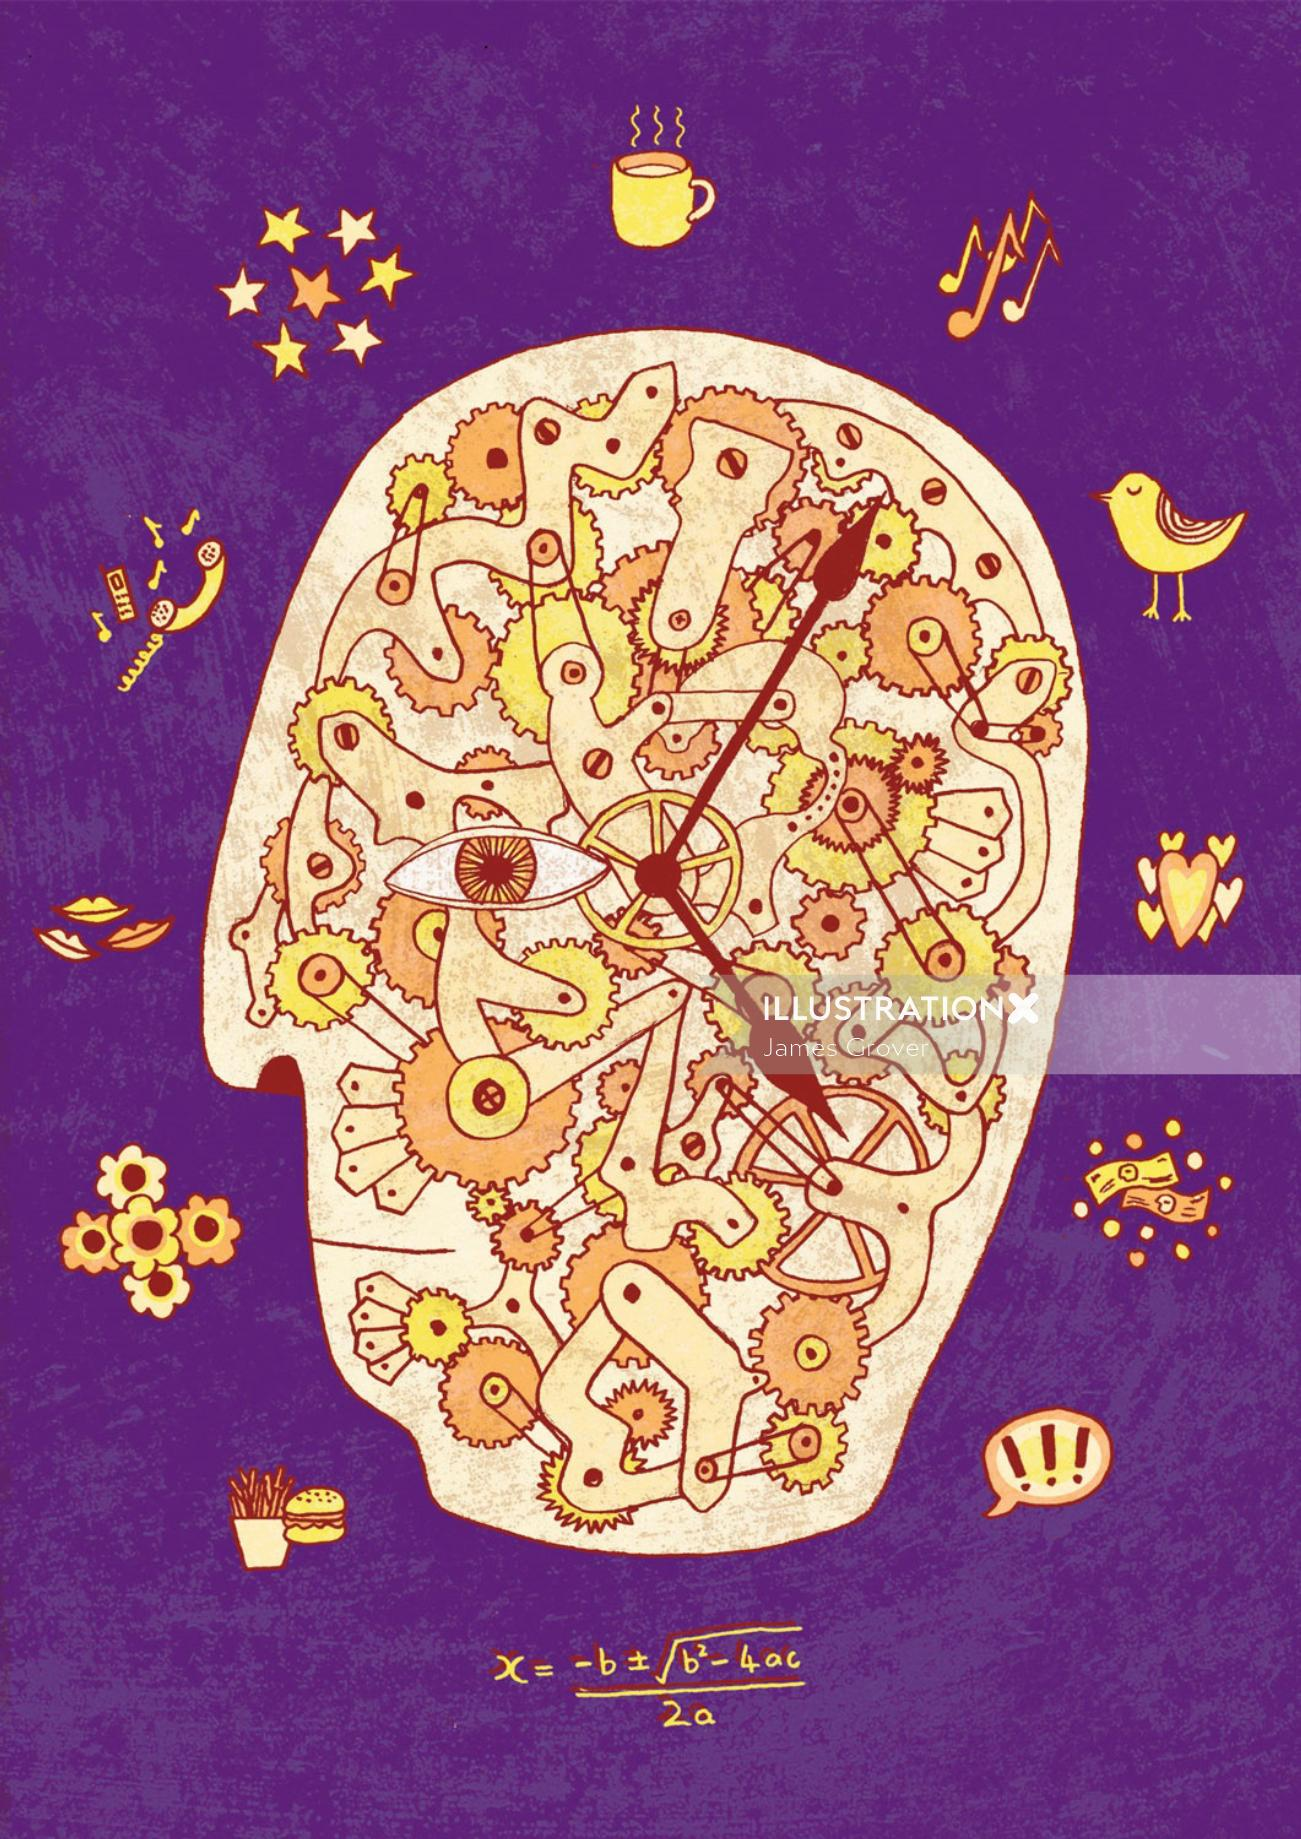 The psychologist Illustration of Time in our Every Day lives